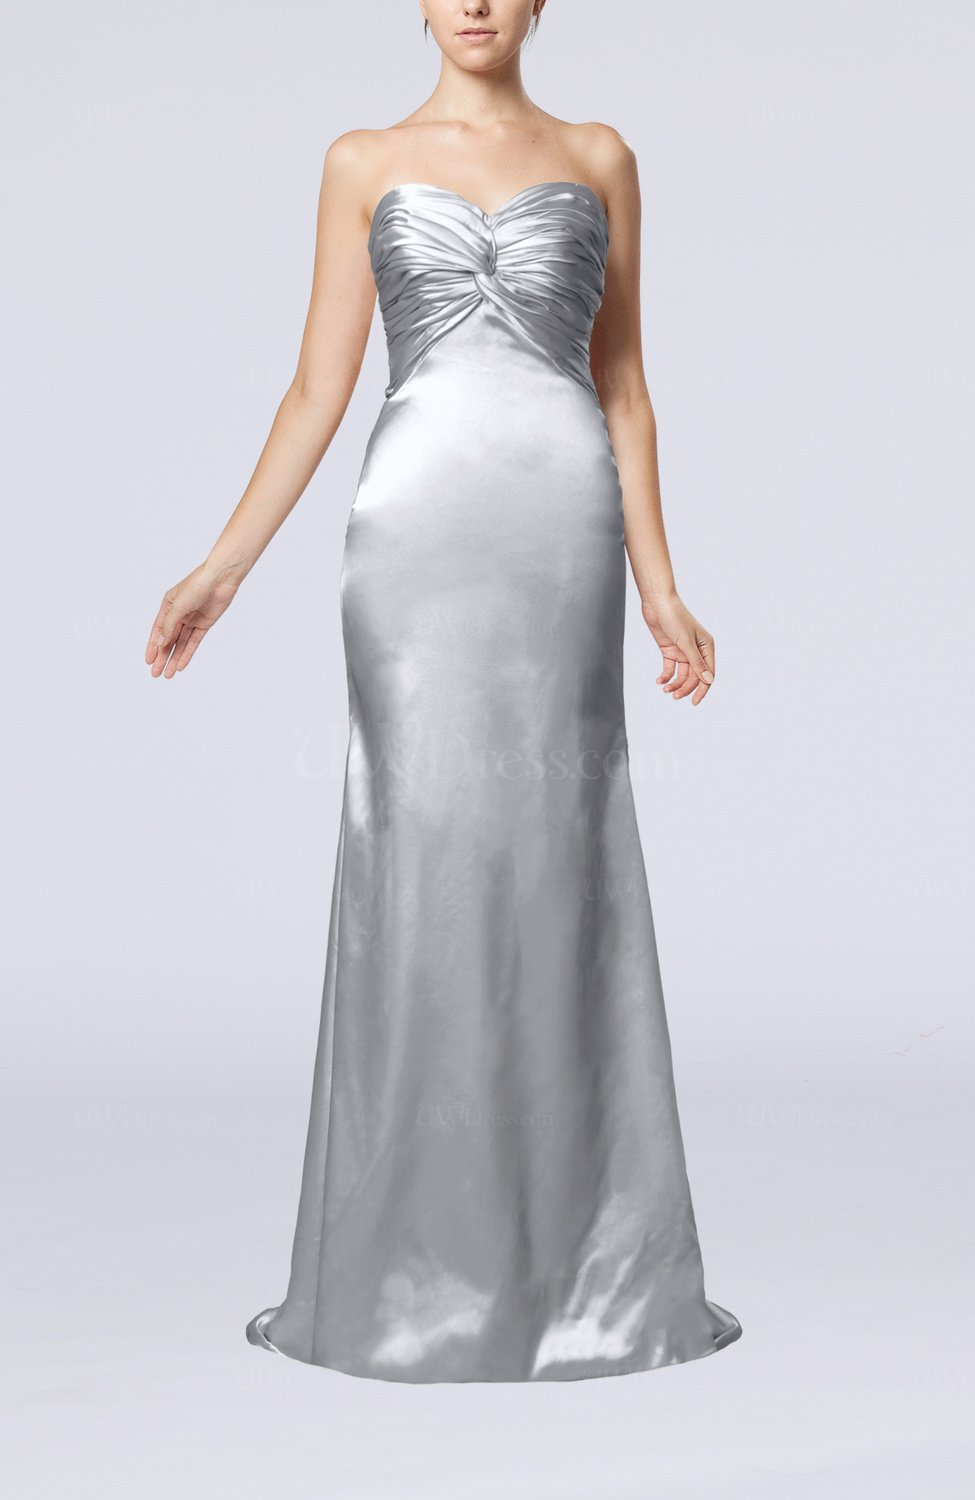 46be7bf0a0dd Silver Sexy Trumpet Sweetheart Sleeveless Sweep Train Bridesmaid ...